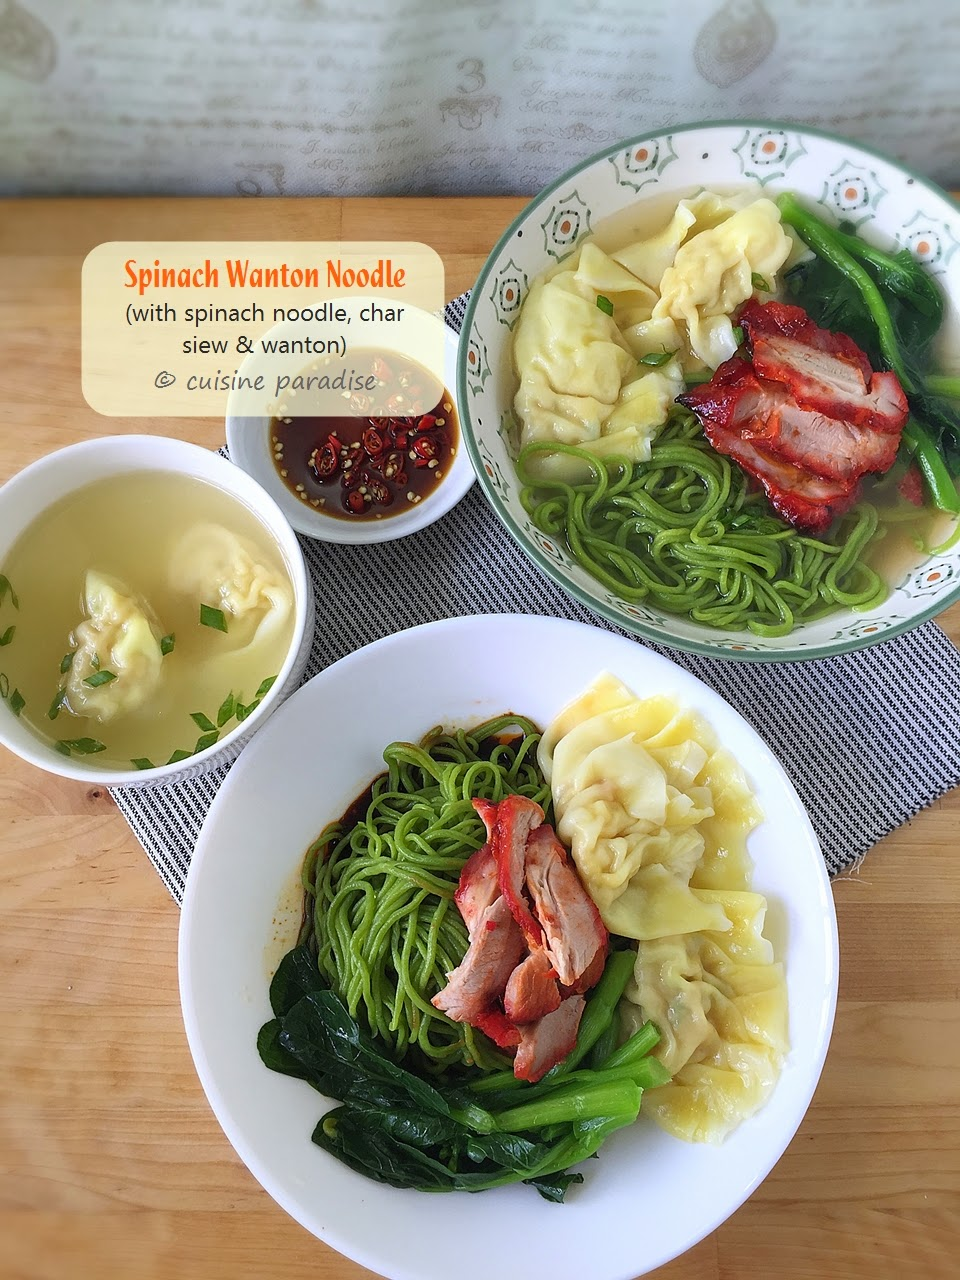 Cuisine paradise singapore food blog recipes reviews and travel 3 recipes homemade asian noodle using philips noodle maker hr236505 forumfinder Gallery